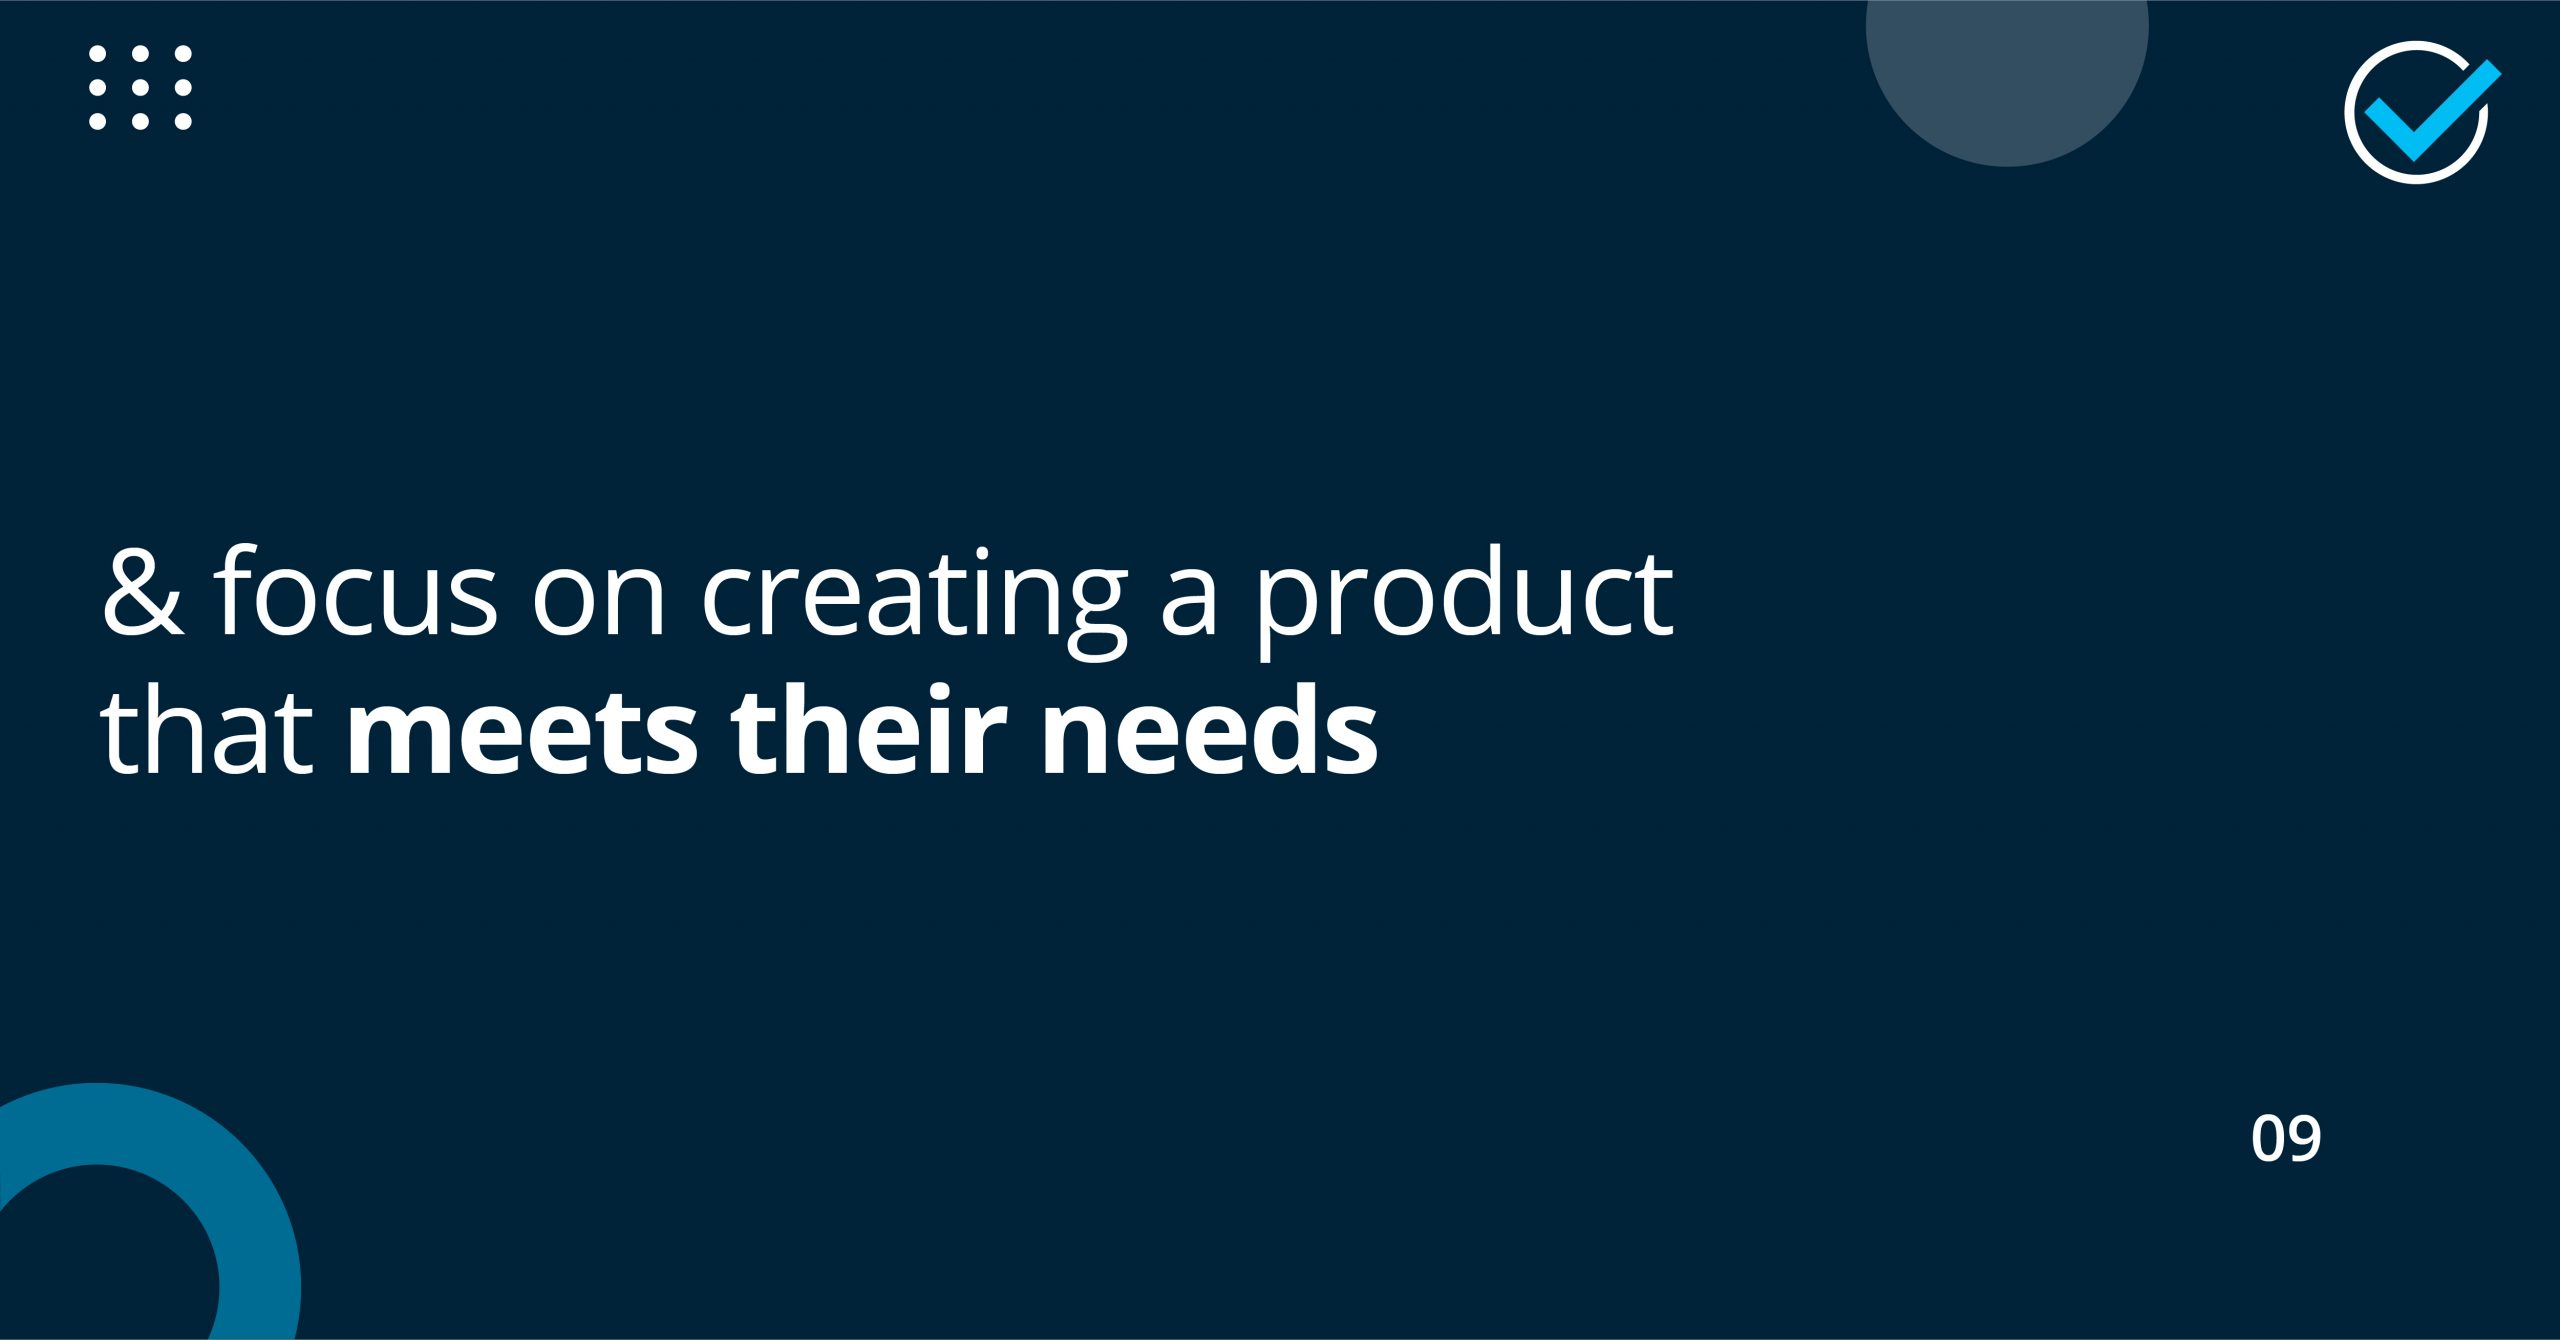 and focus on creating a product that meets their needs.